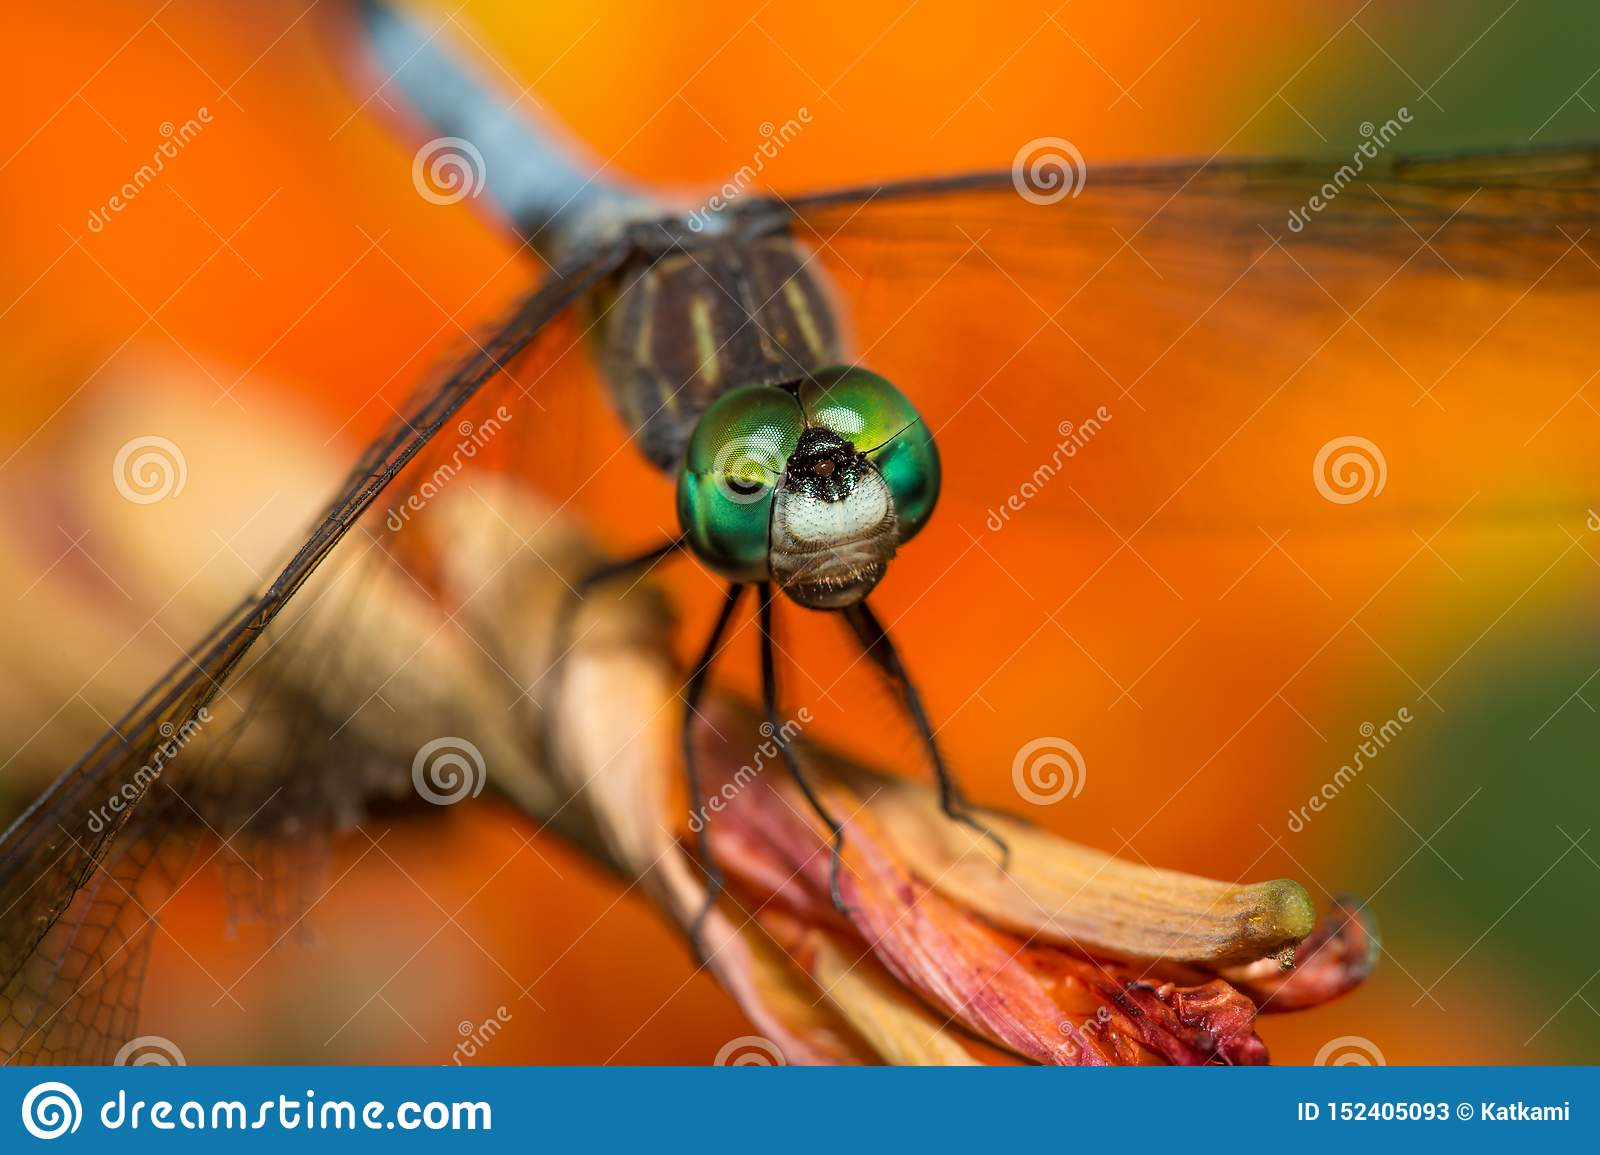 Dragonfly with bright green eyes on orange flower